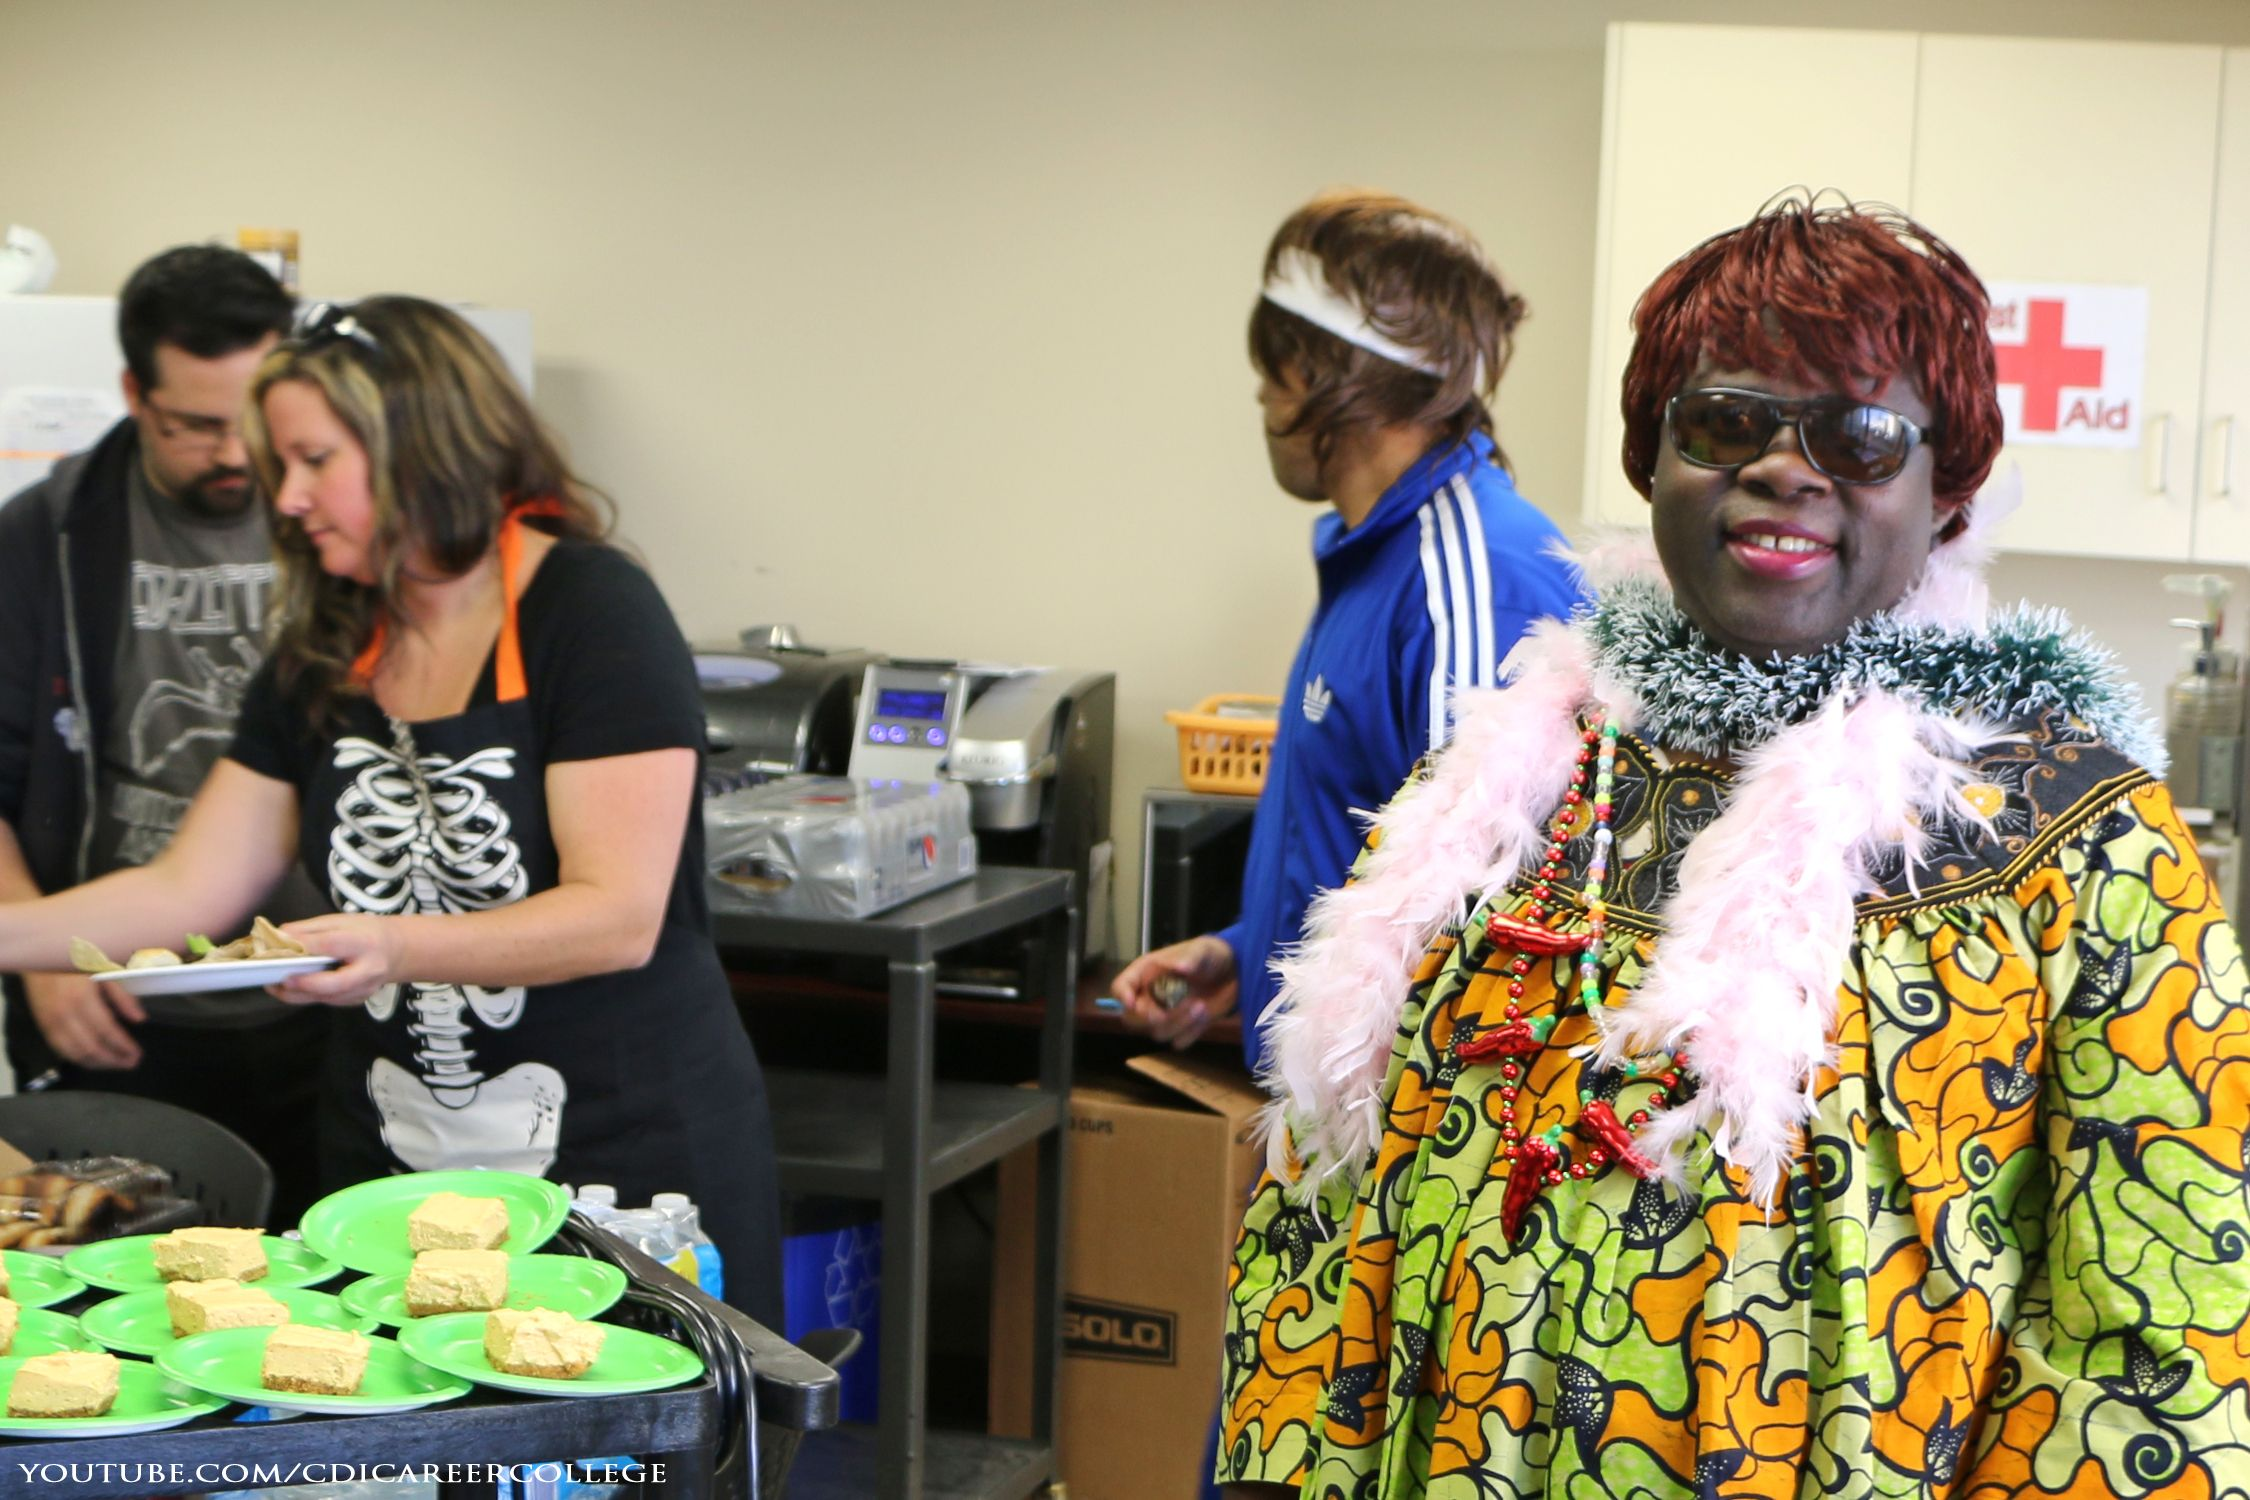 halloween costumes at the cdi college edmonton city centre campus